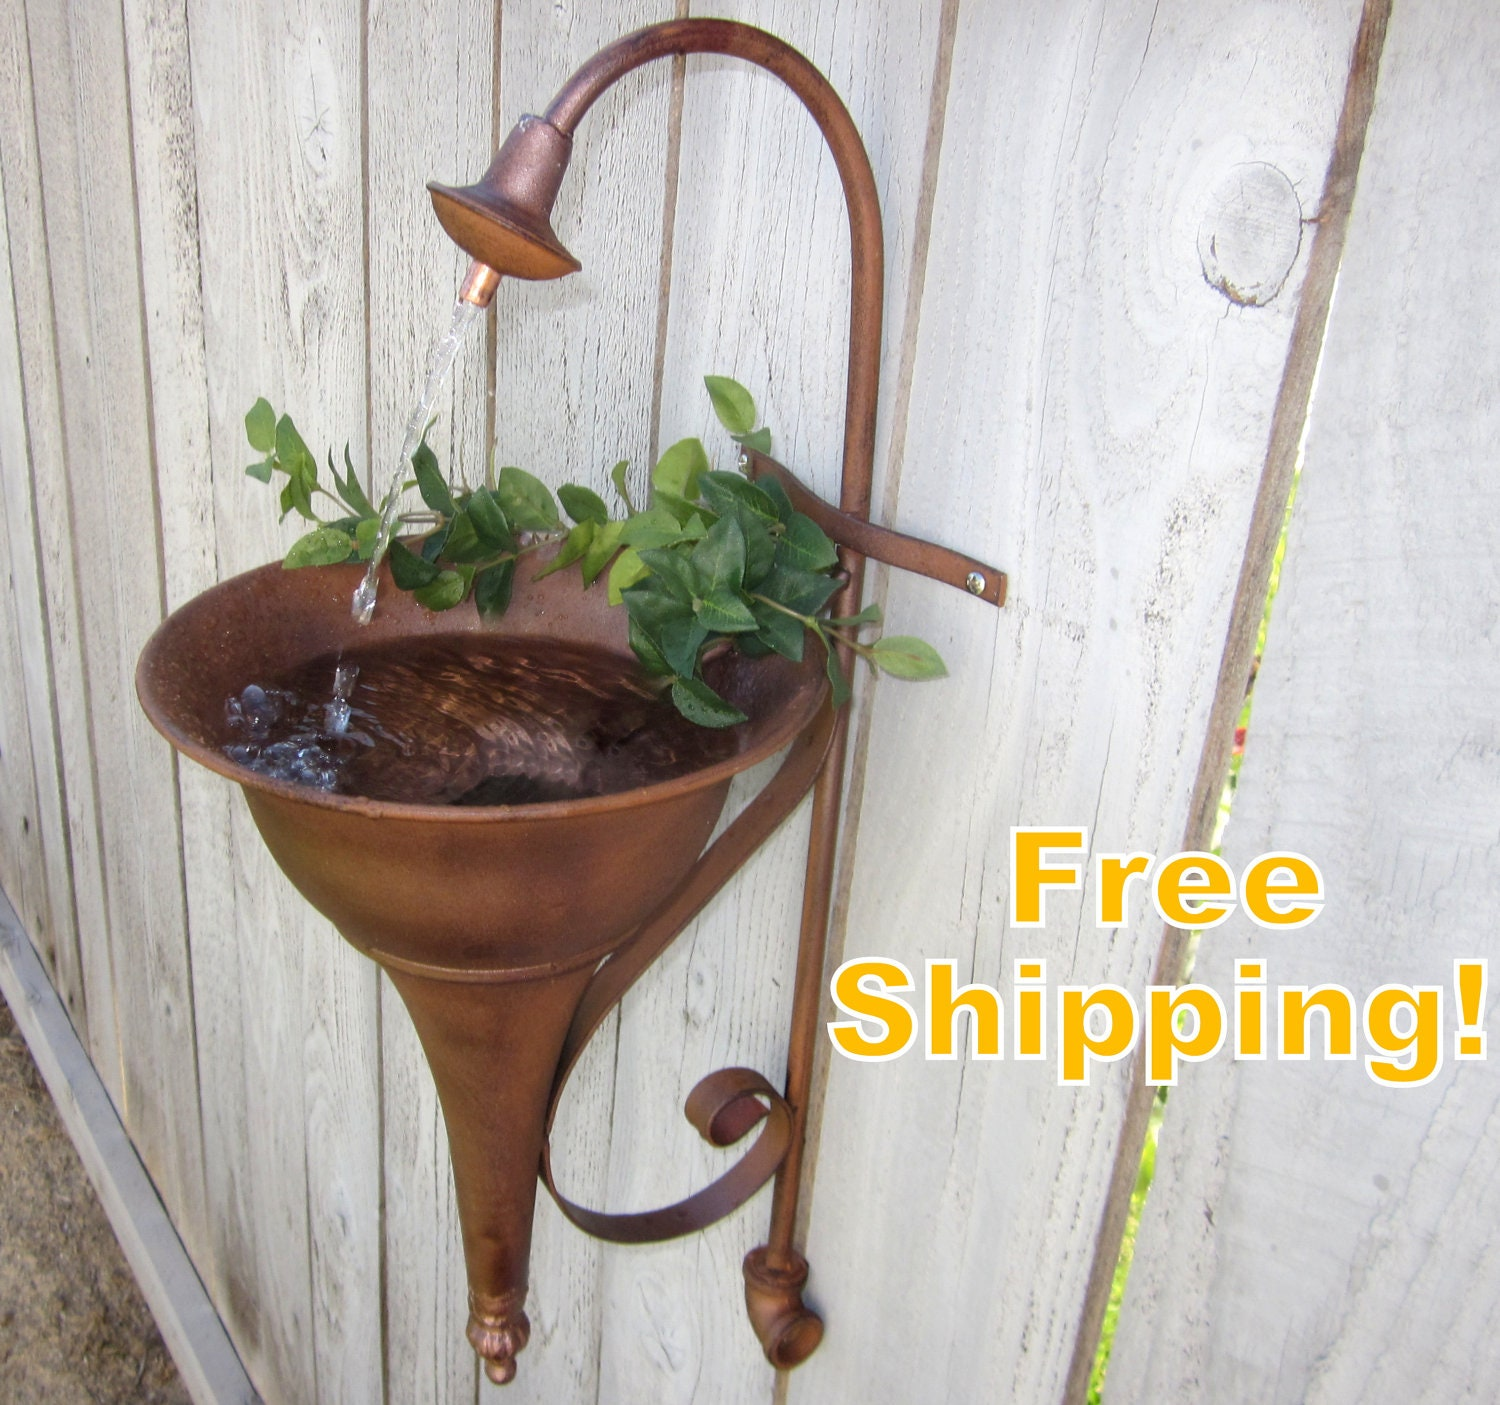 Outdoor Wall Sconce Half Sun And Details Rustic Light: Faucet Spout SOLAR Wall Hanging Water Fountain By